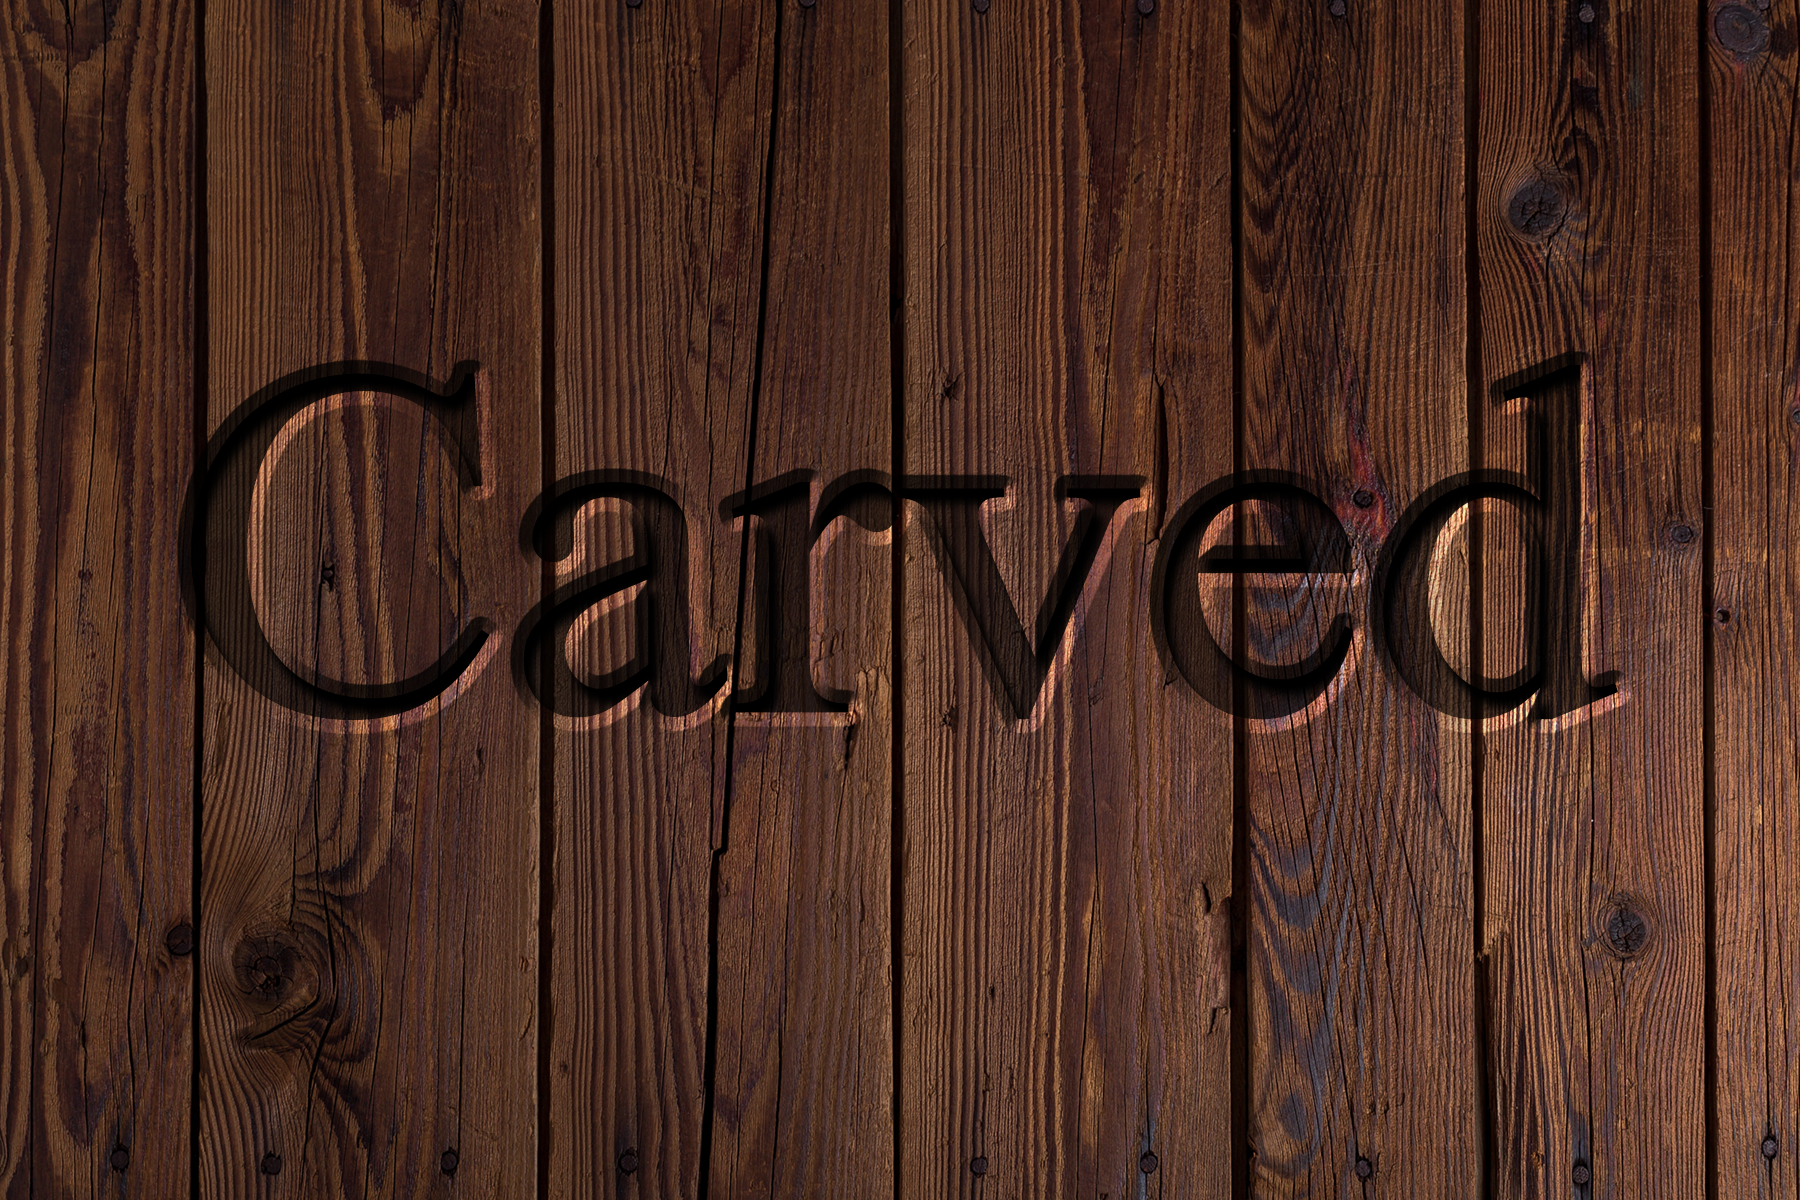 AterImber.com - Writing - Writing Tips - PHSH Effect Series - Carved Effect - Carved Effect Finsihed Wood - phsh effect, writing tips, book cover tips, indie author tips, self pub tips